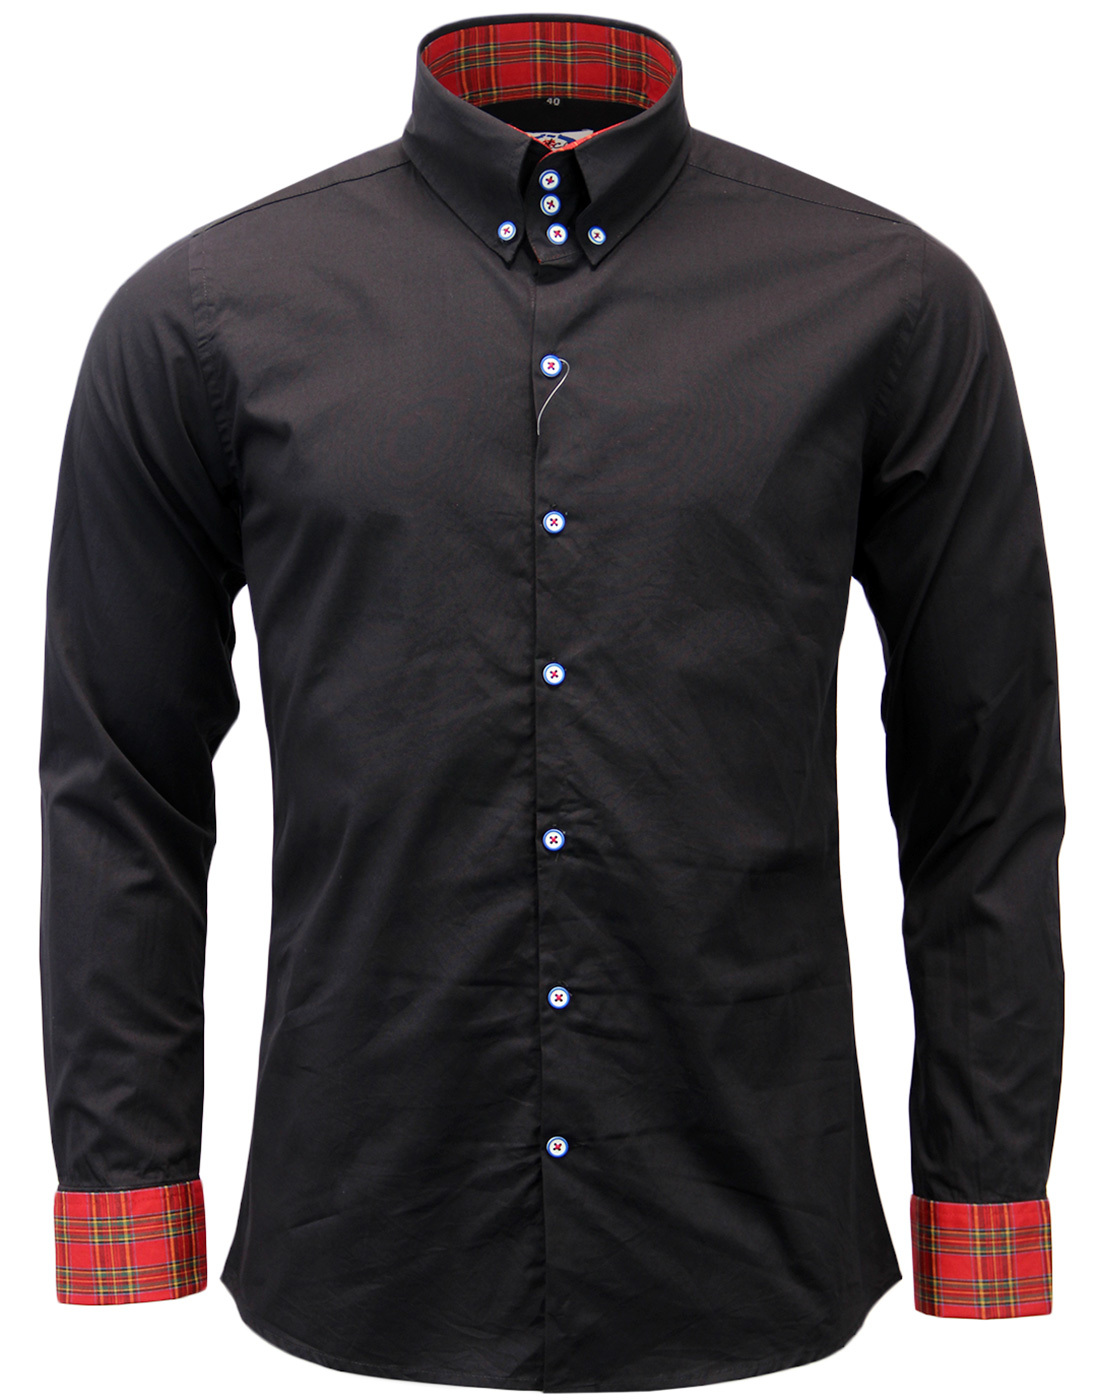 The Whiskey MADCAP ENGLAND High Collar Mod Shirt